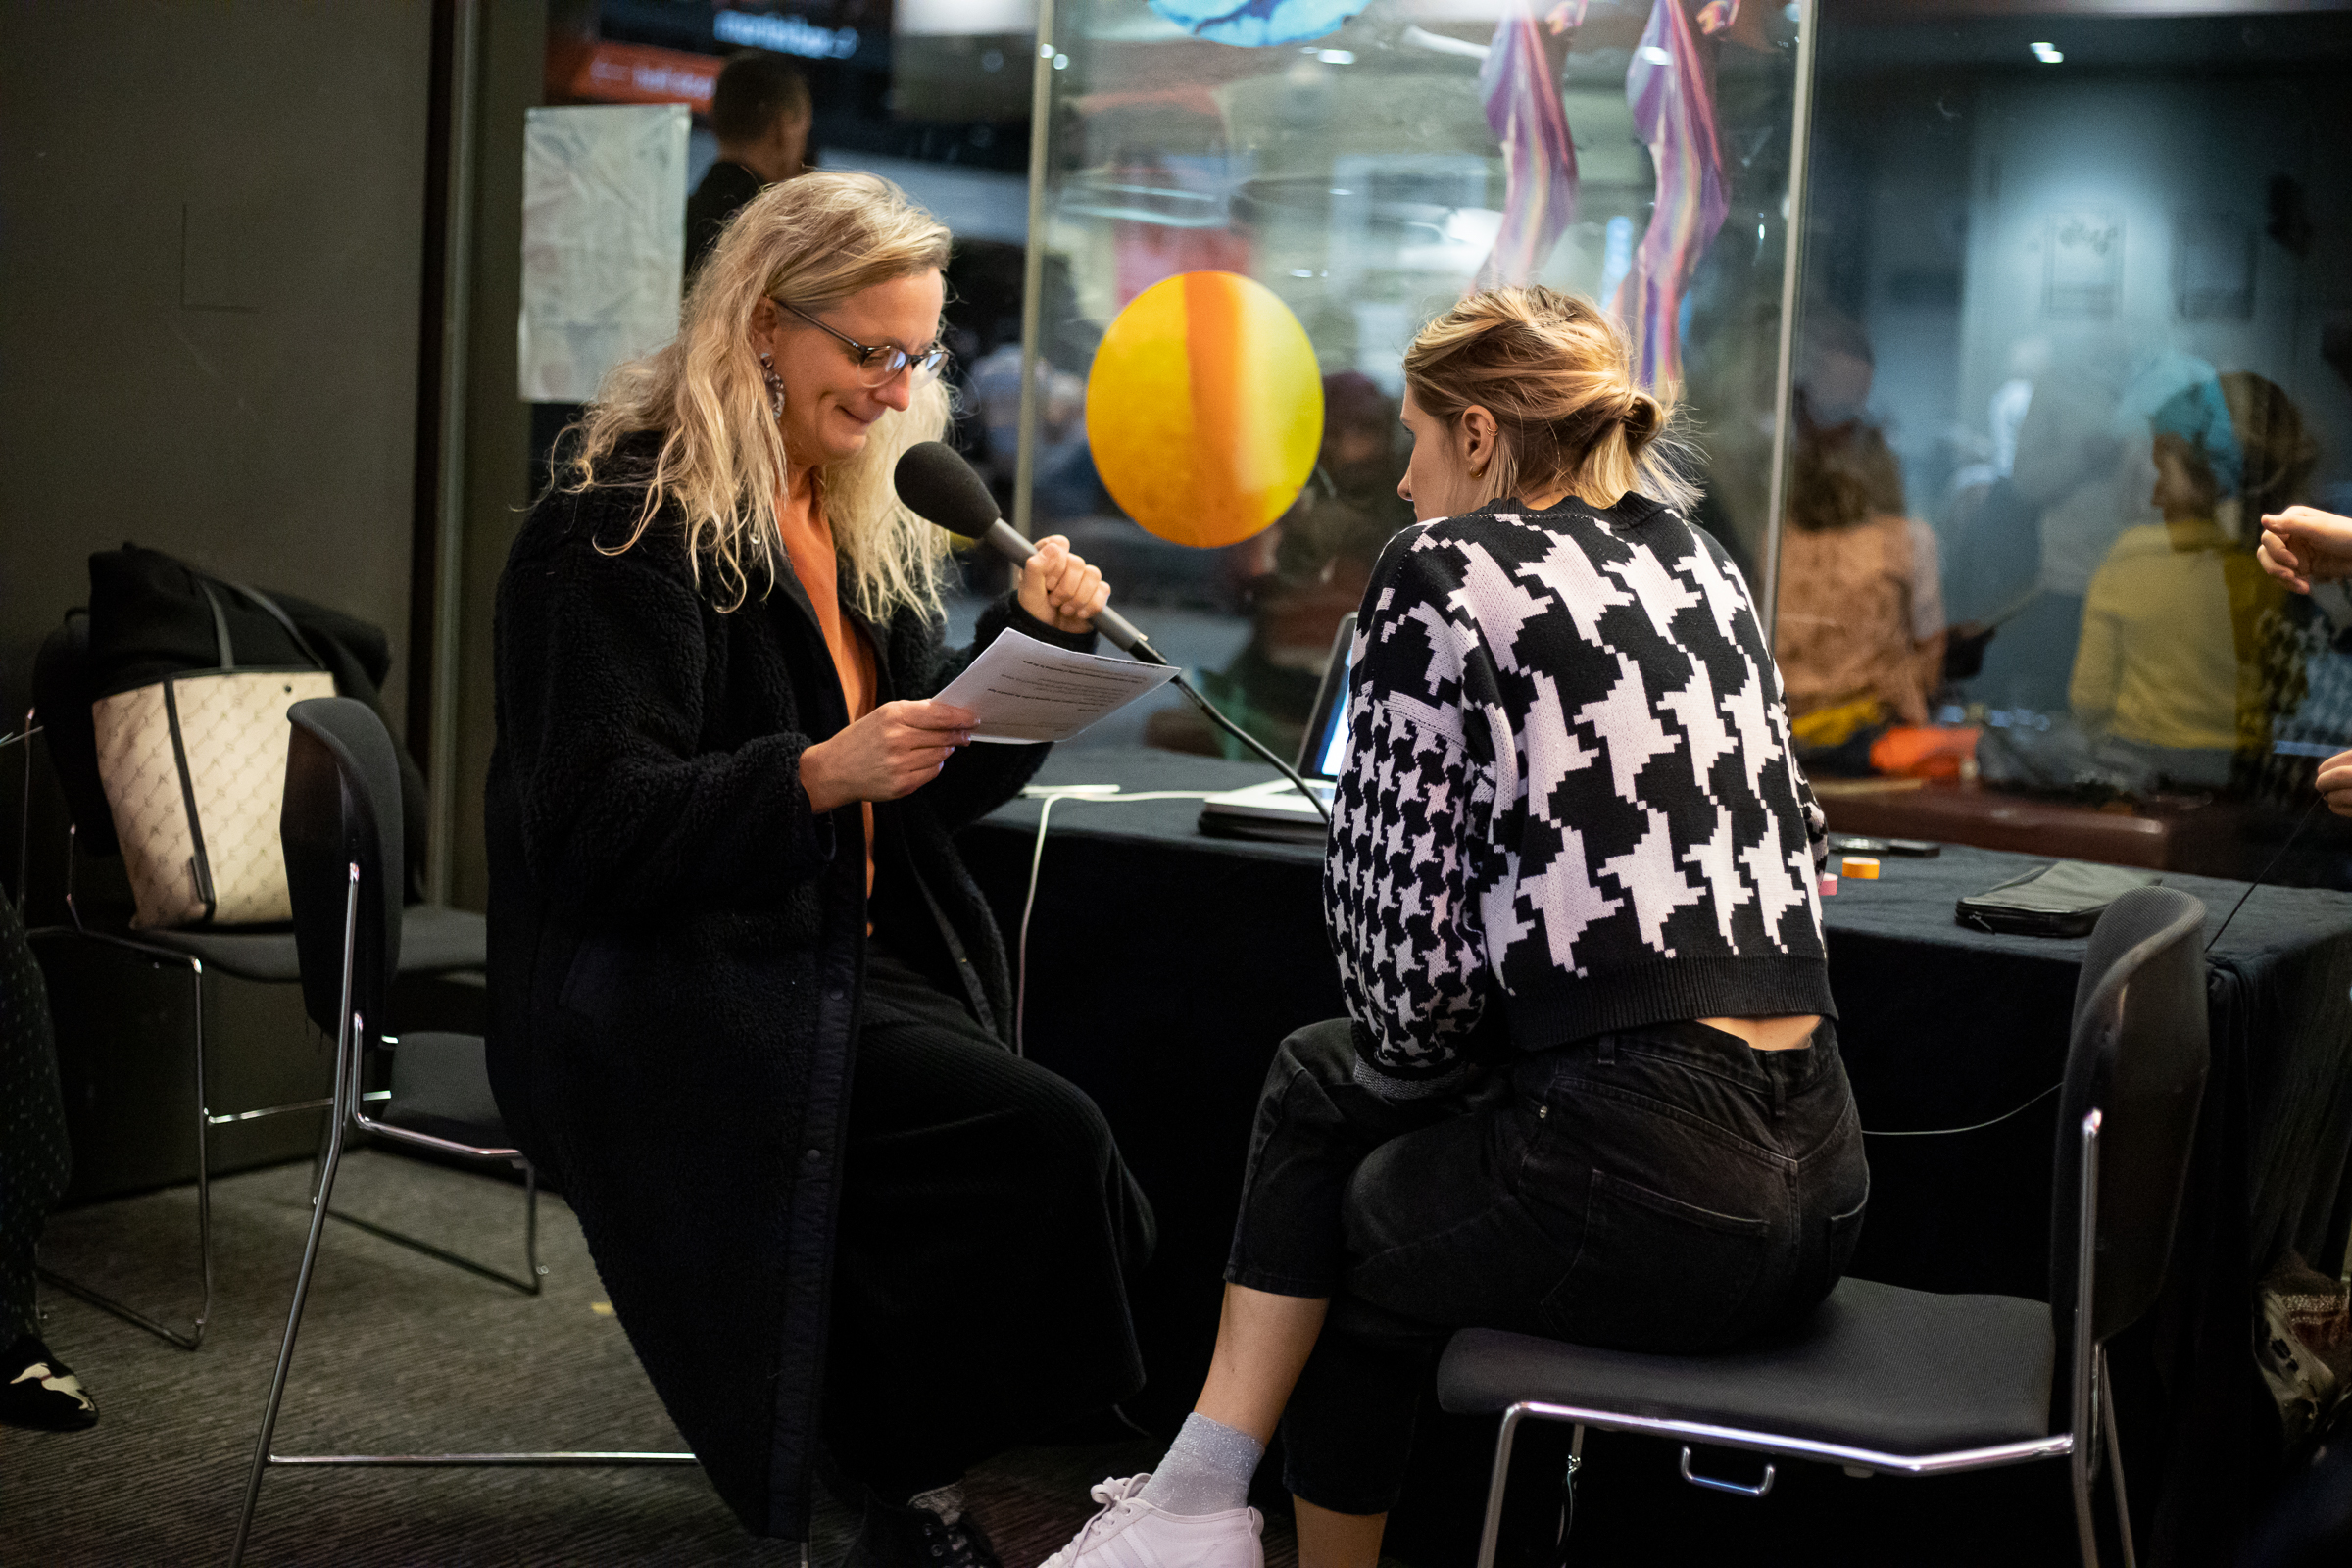 Constellations 2019–20, Barbican. Show me the face of your digital voice, by Hannah Kemp-Welch, Dunya Kalantery and Amanda Ramasawmy. Photo: Mac Praed Media (CONSTELLATIONS 2020–21 ARTIST OPEN CALL 1)